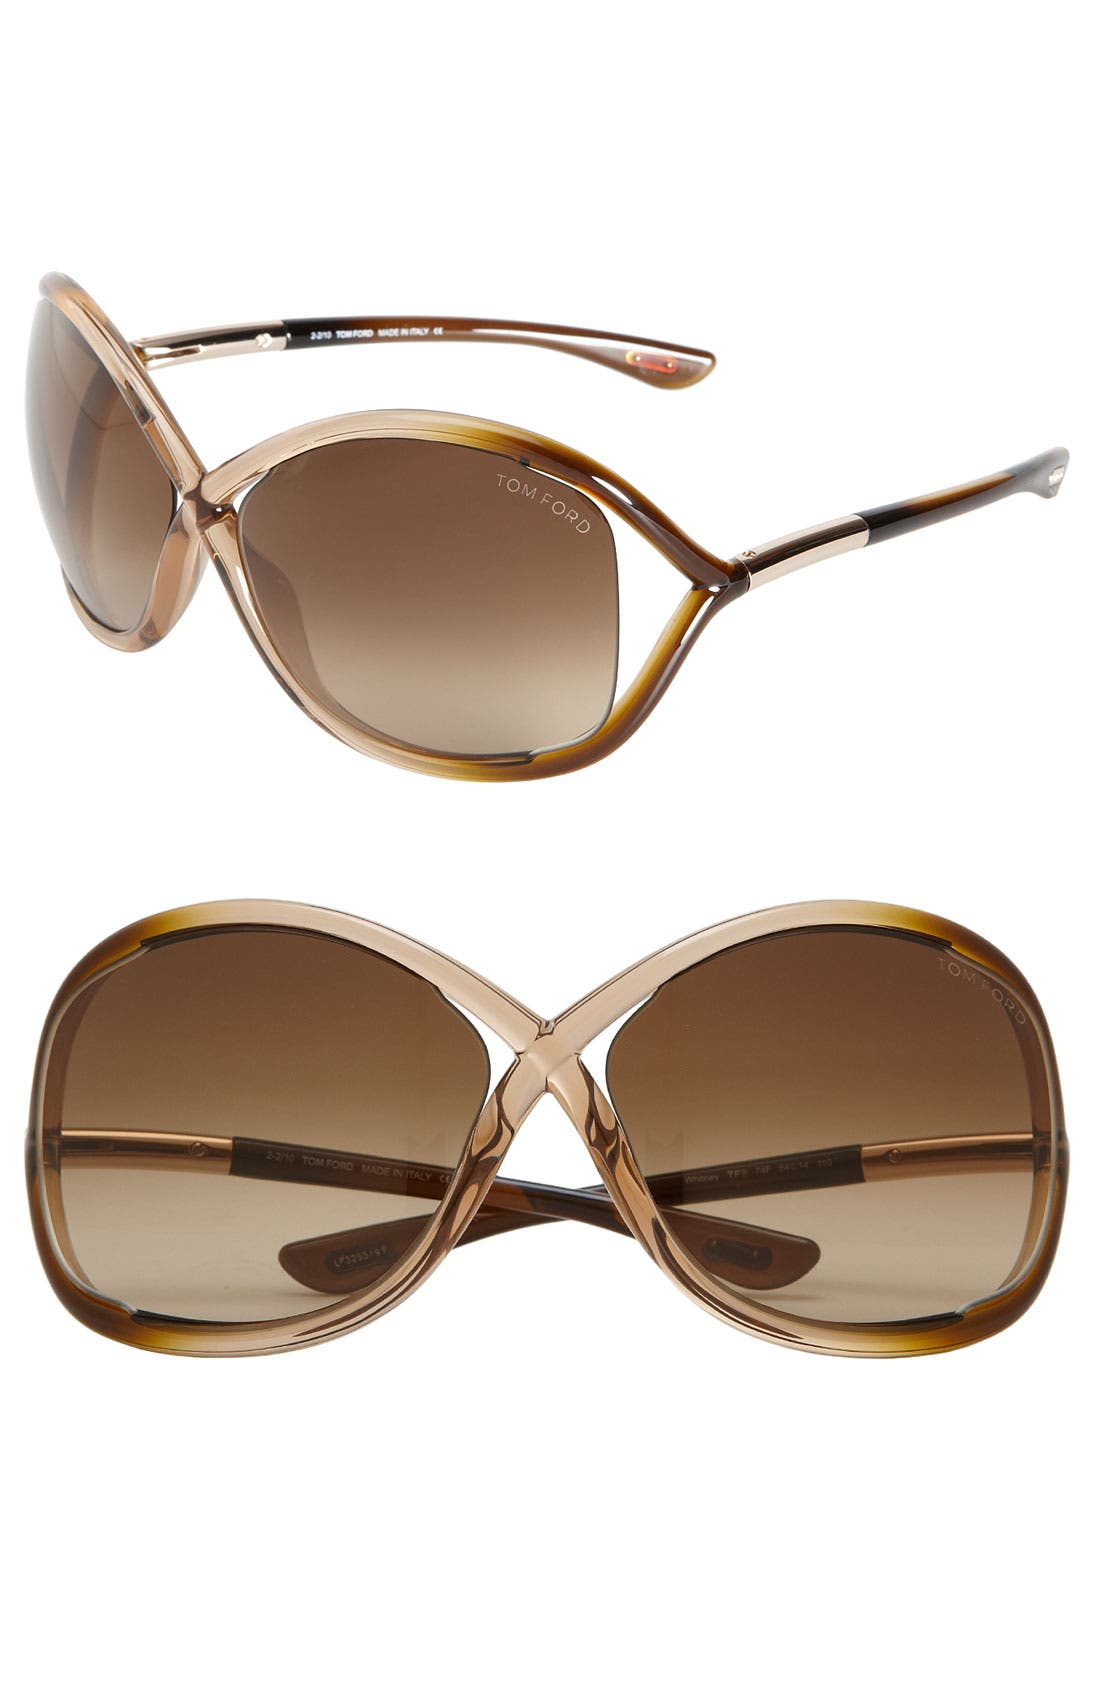 Alternate Image 1 Selected - Tom Ford 'Whitney' 64mm Open Side Sunglasses